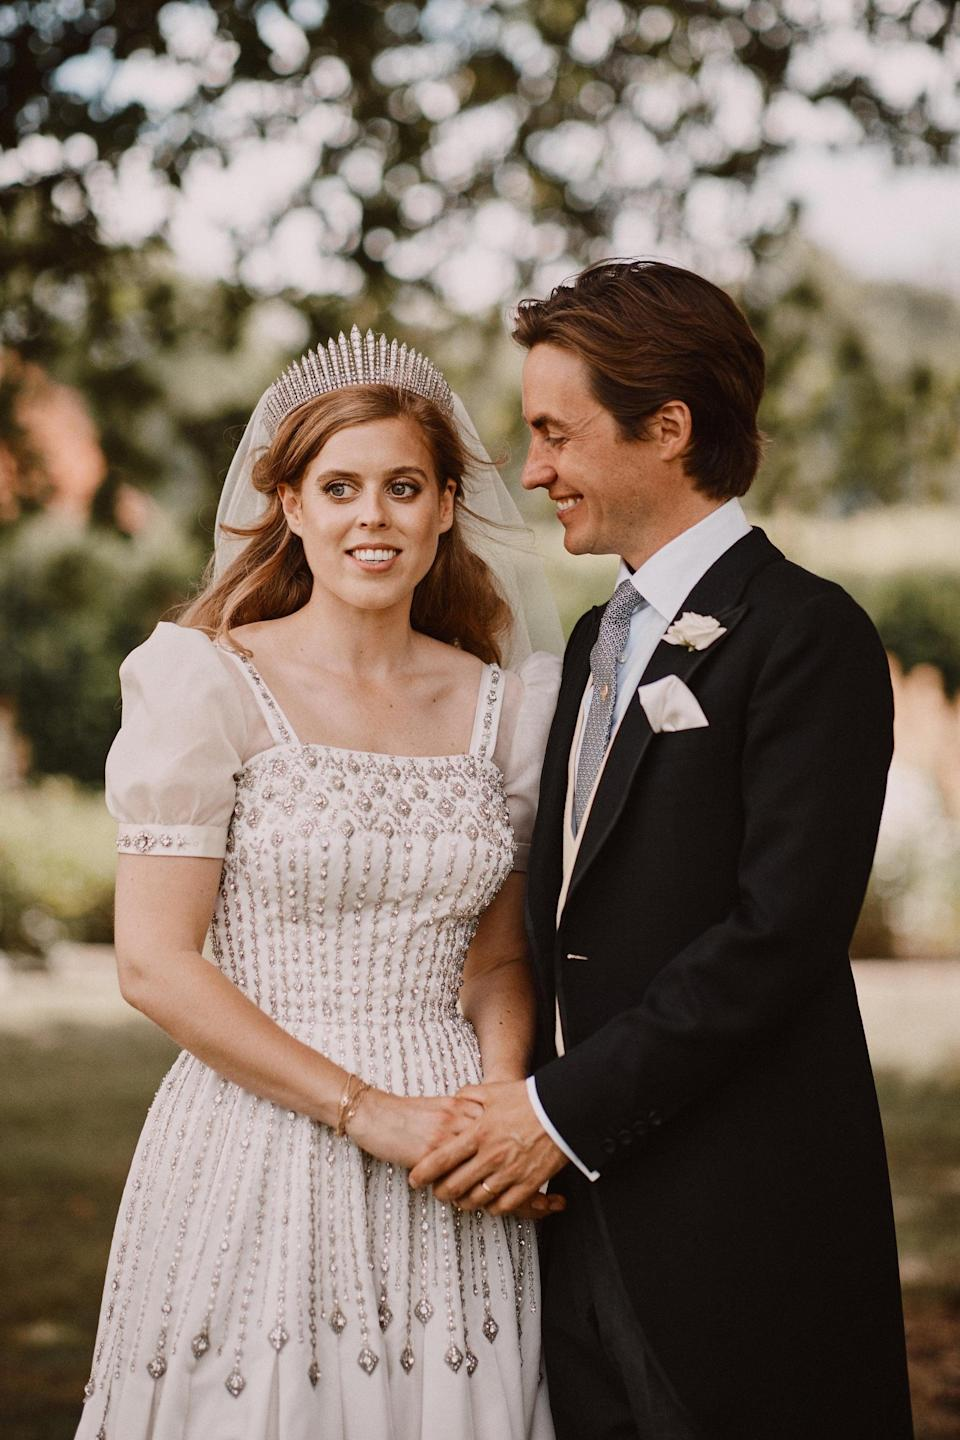 WINDSOR, UNITED KINGDOM - JULY 18: NEWS EDITORIAL USE ONLY. NO COMMERCIAL USE. NO MERCHANDISING, ADVERTISING, SOUVENIRS, MEMORABILIA or COLOURABLY SIMILAR. NOT FOR USE AFTER 18th January 2021 WITHOUT PRIOR PERMISSION FROM BUCKINGHAM PALACE. NO CROPPING. In this handout image released by the Royal Communications, Princess Beatrice and Edoardo Mapelli Mozzi are photographed after their wedding in the grounds of Royal Lodge on July 18, 2020 in Windsor, United Kingdom. (Photo by Benjamin Wheeler via Getty Images) Copyright in the photograph is vested in Princess Beatrice and Edoardo Mapelli Mozzi and Benjamin Wheeler. Publications are asked to credit the photograph to Benjamin Wheeler. No charge should be made for the supply, release or publication of the photograph. The photograph must not be digitally enhanced, manipulated or modified in any manner or form and must include all of the individuals in the photograph when published. NOTE TO EDITORS: This handout photo may only be used in for editorial reporting purposes for the contemporaneous illustration of events, things or the people in the image or facts mentioned in the caption. Reuse of the picture may require further permission from the copyright holder.